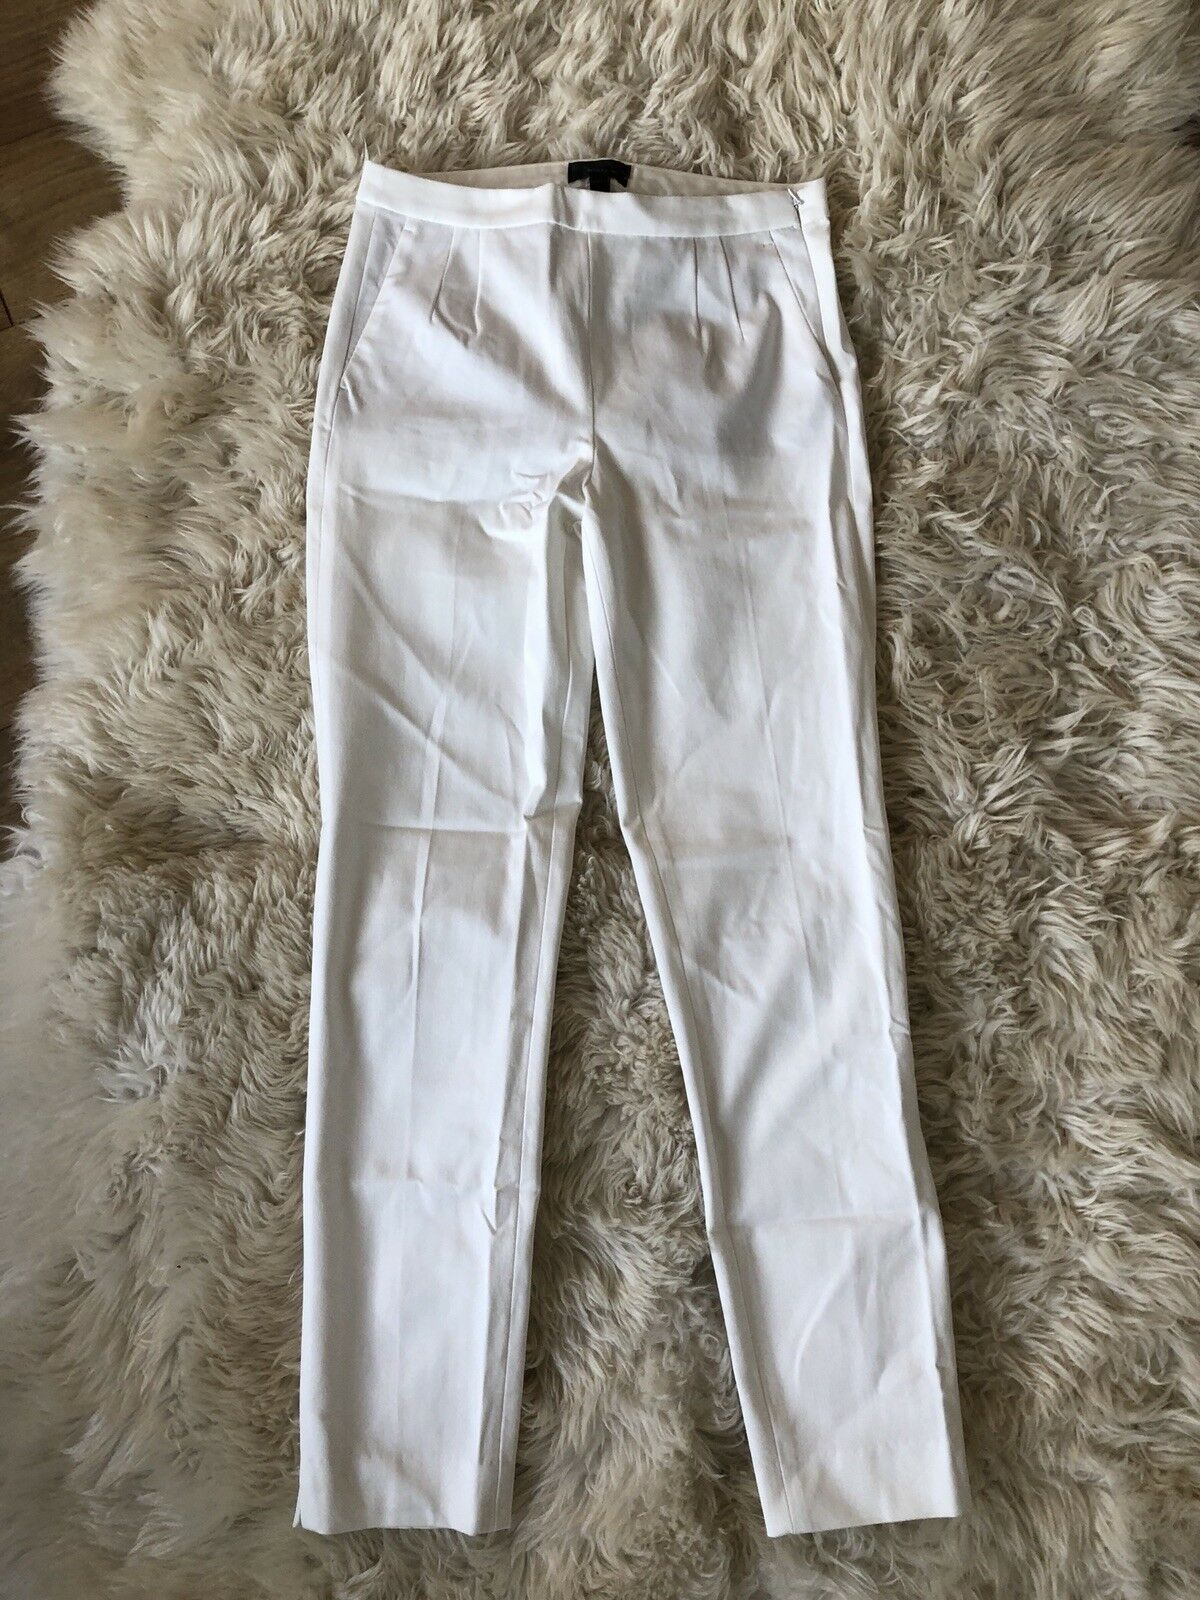 New J Crew Tall Martie Pant in Two-way Stretch Cotton Ivory White Sz 4T C2768